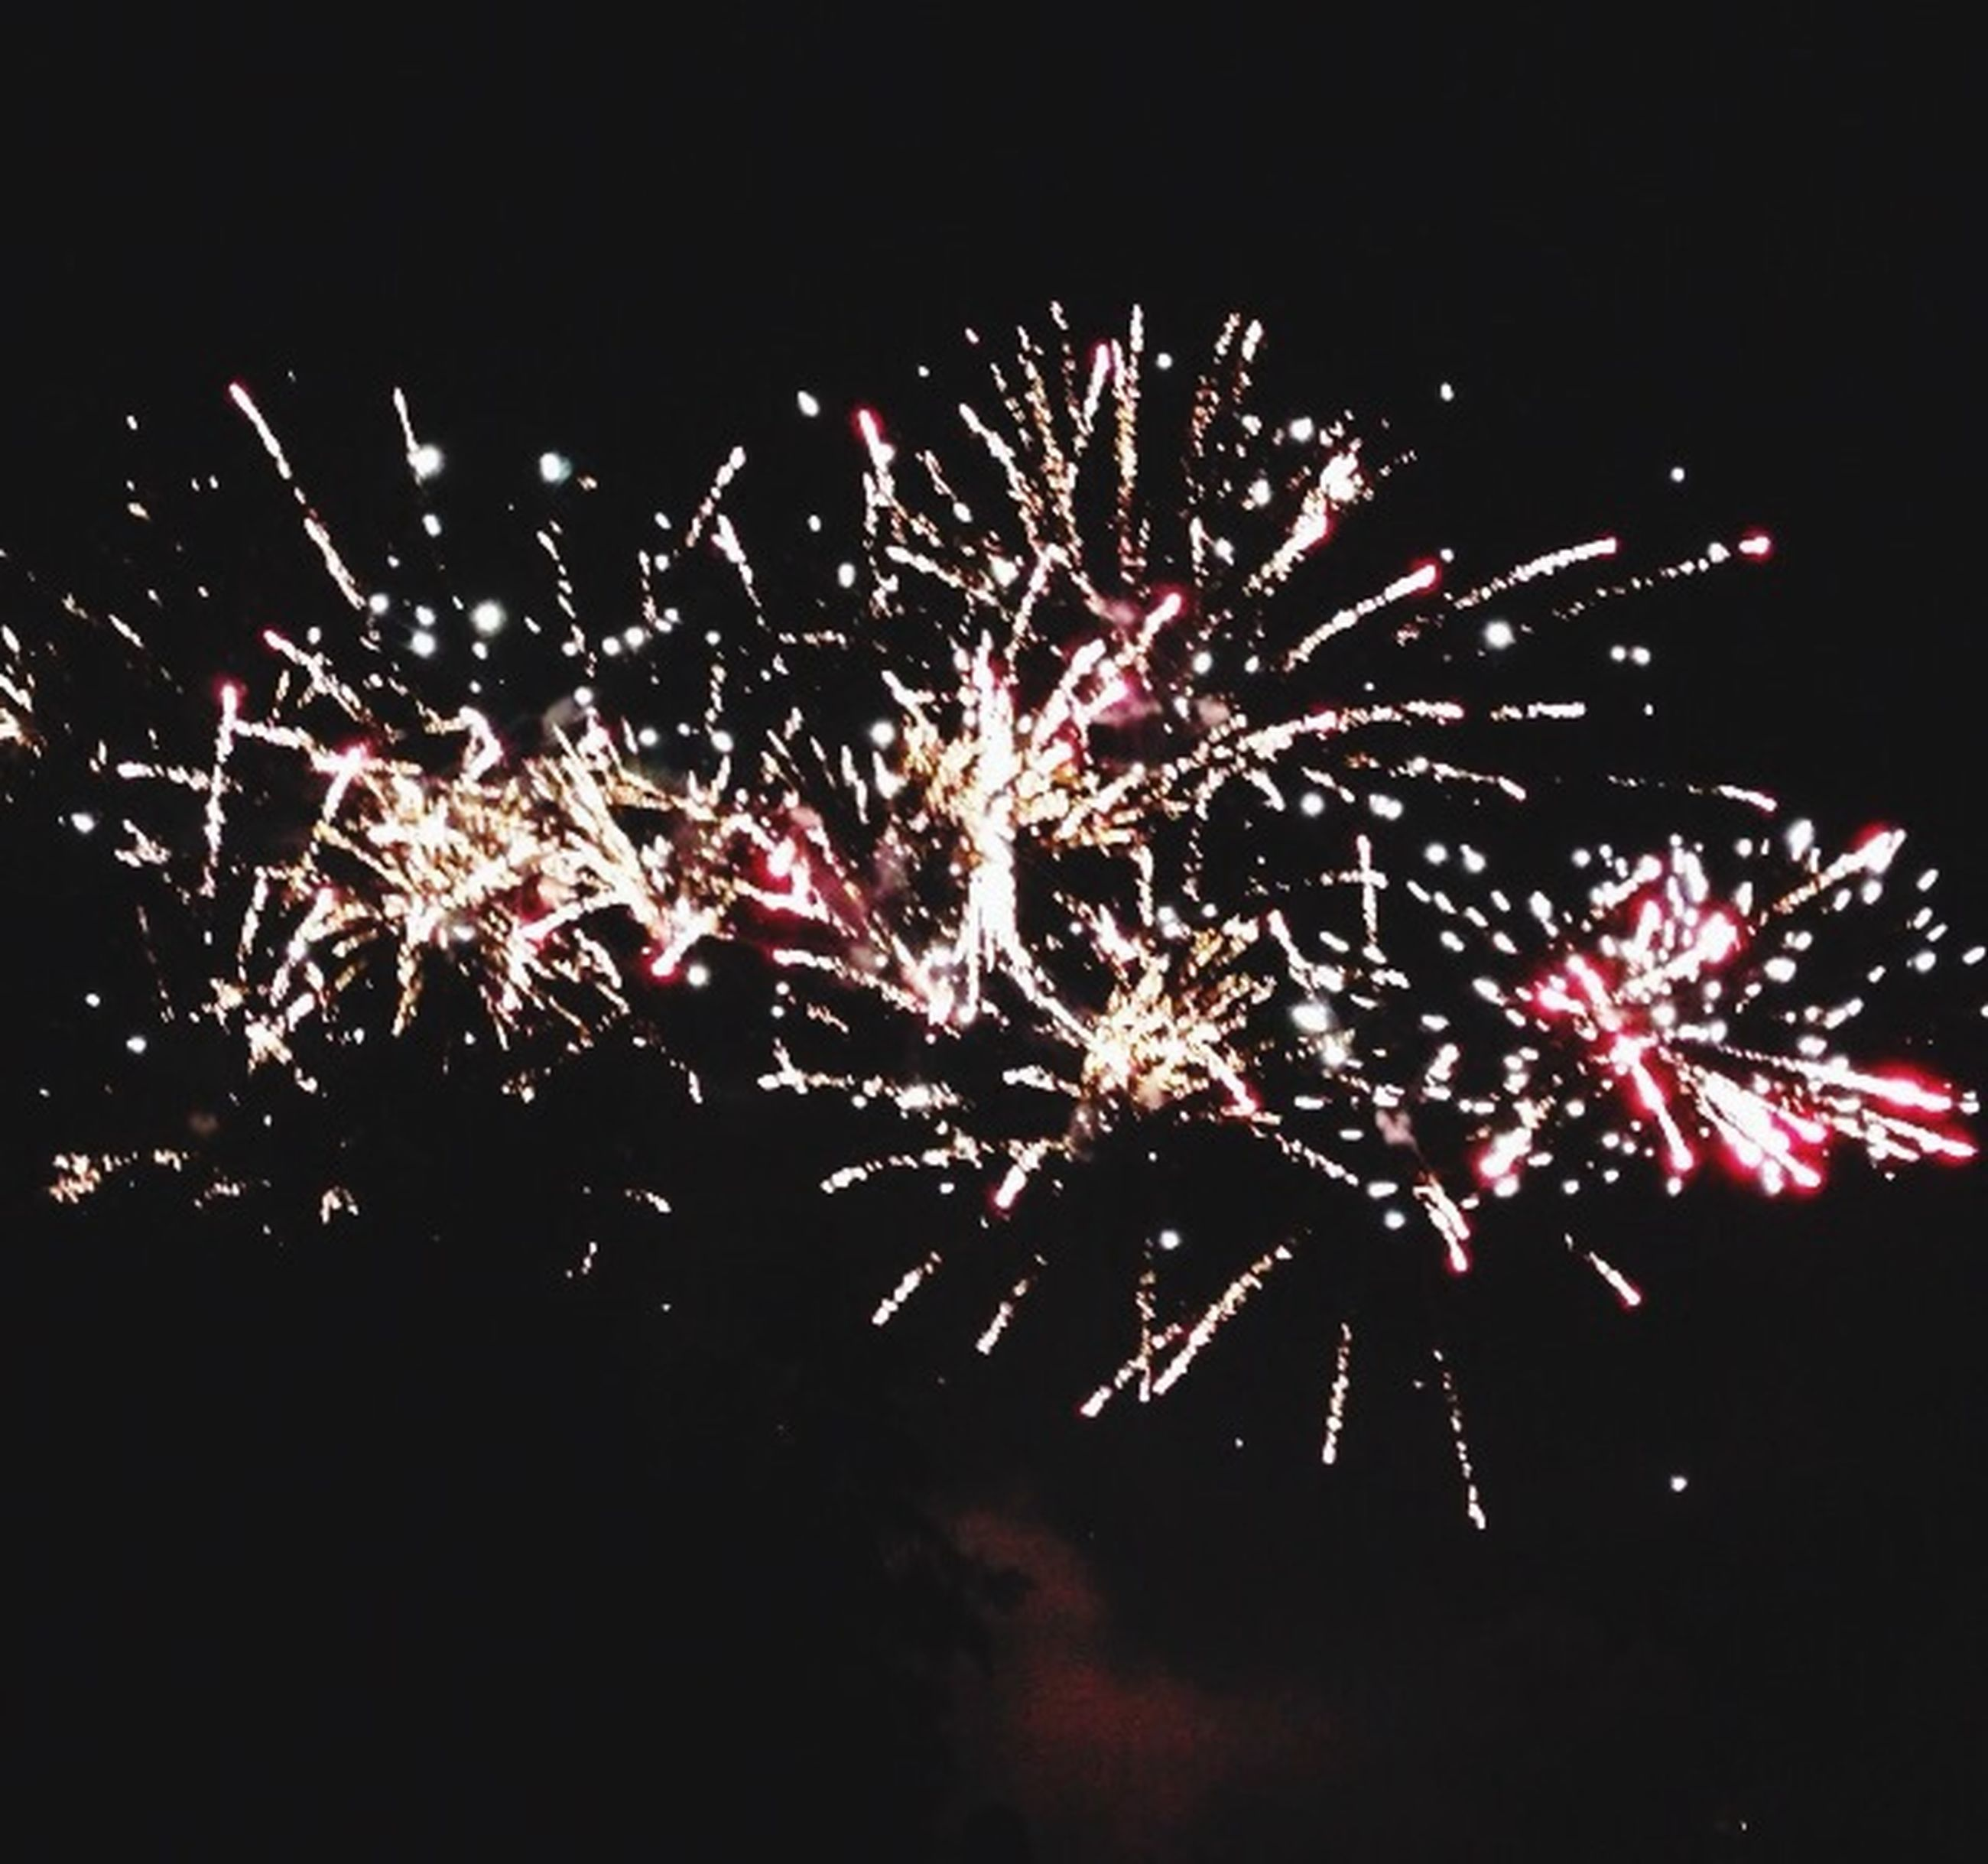 night, firework display, celebration, exploding, illuminated, long exposure, firework - man made object, arts culture and entertainment, event, motion, sparks, firework, glowing, entertainment, blurred motion, sky, low angle view, multi colored, celebration event, fire - natural phenomenon